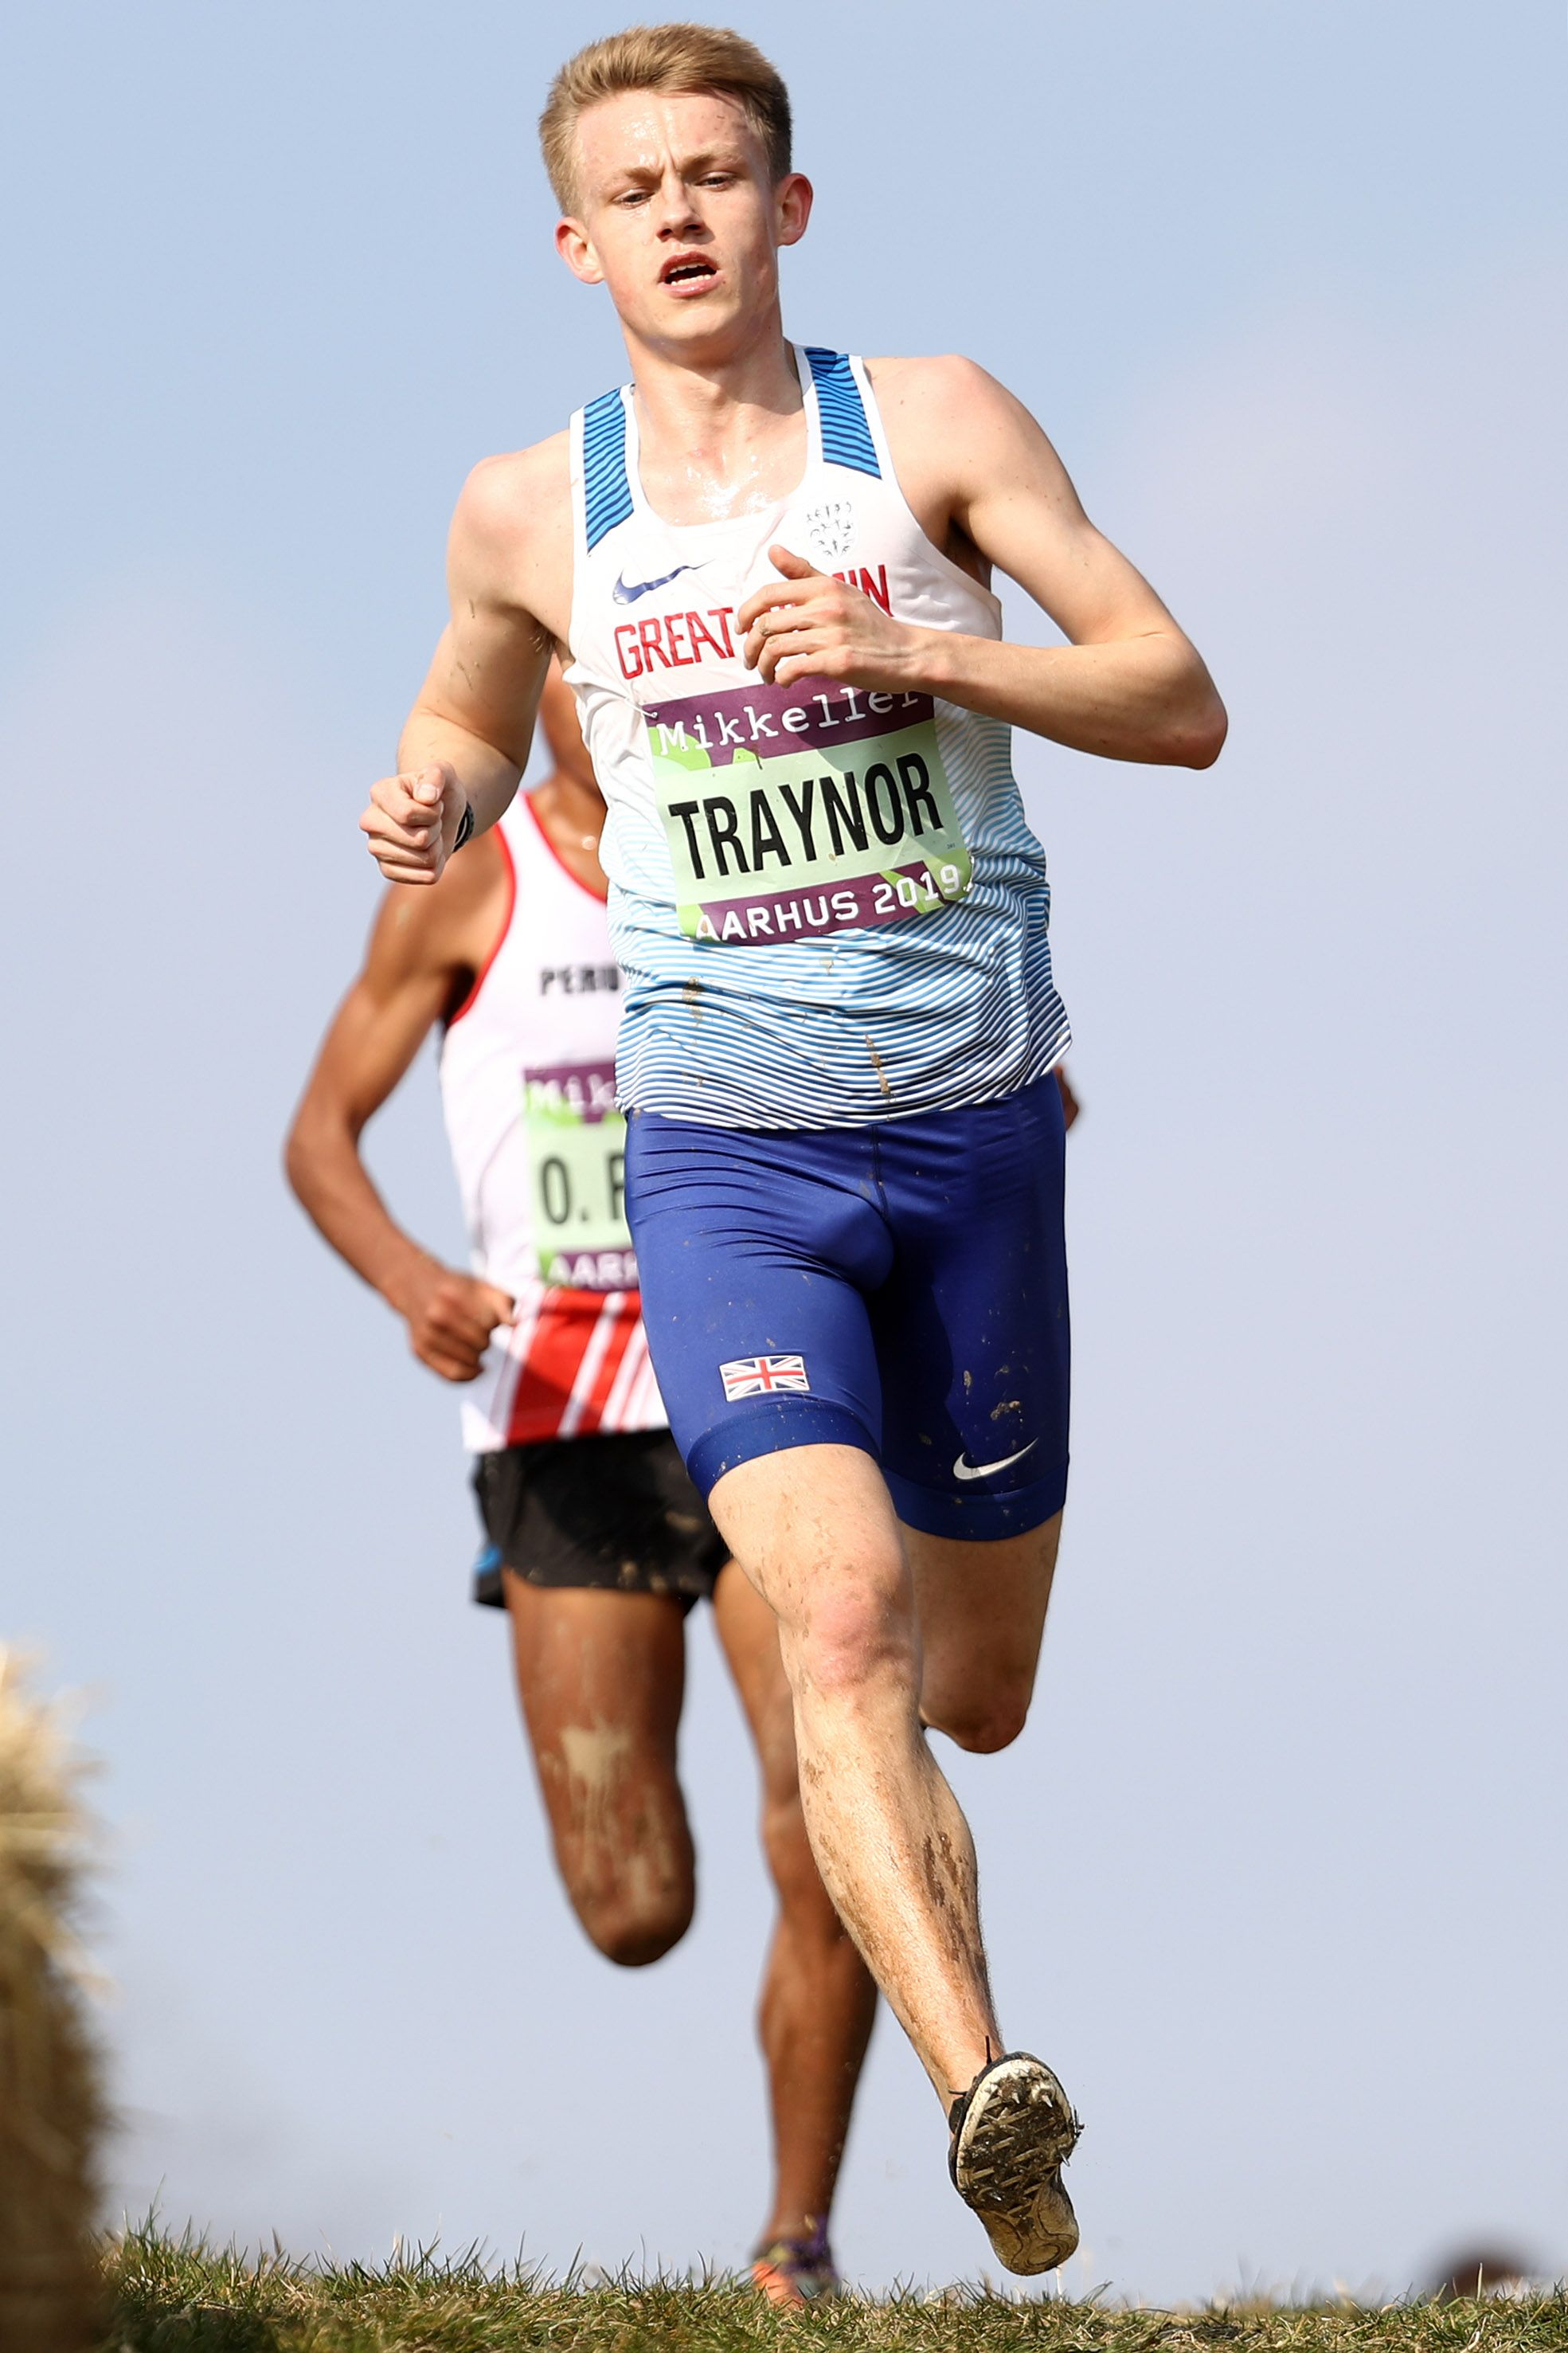 GB's Luke Traynor facing ban after testing positive for cocaine